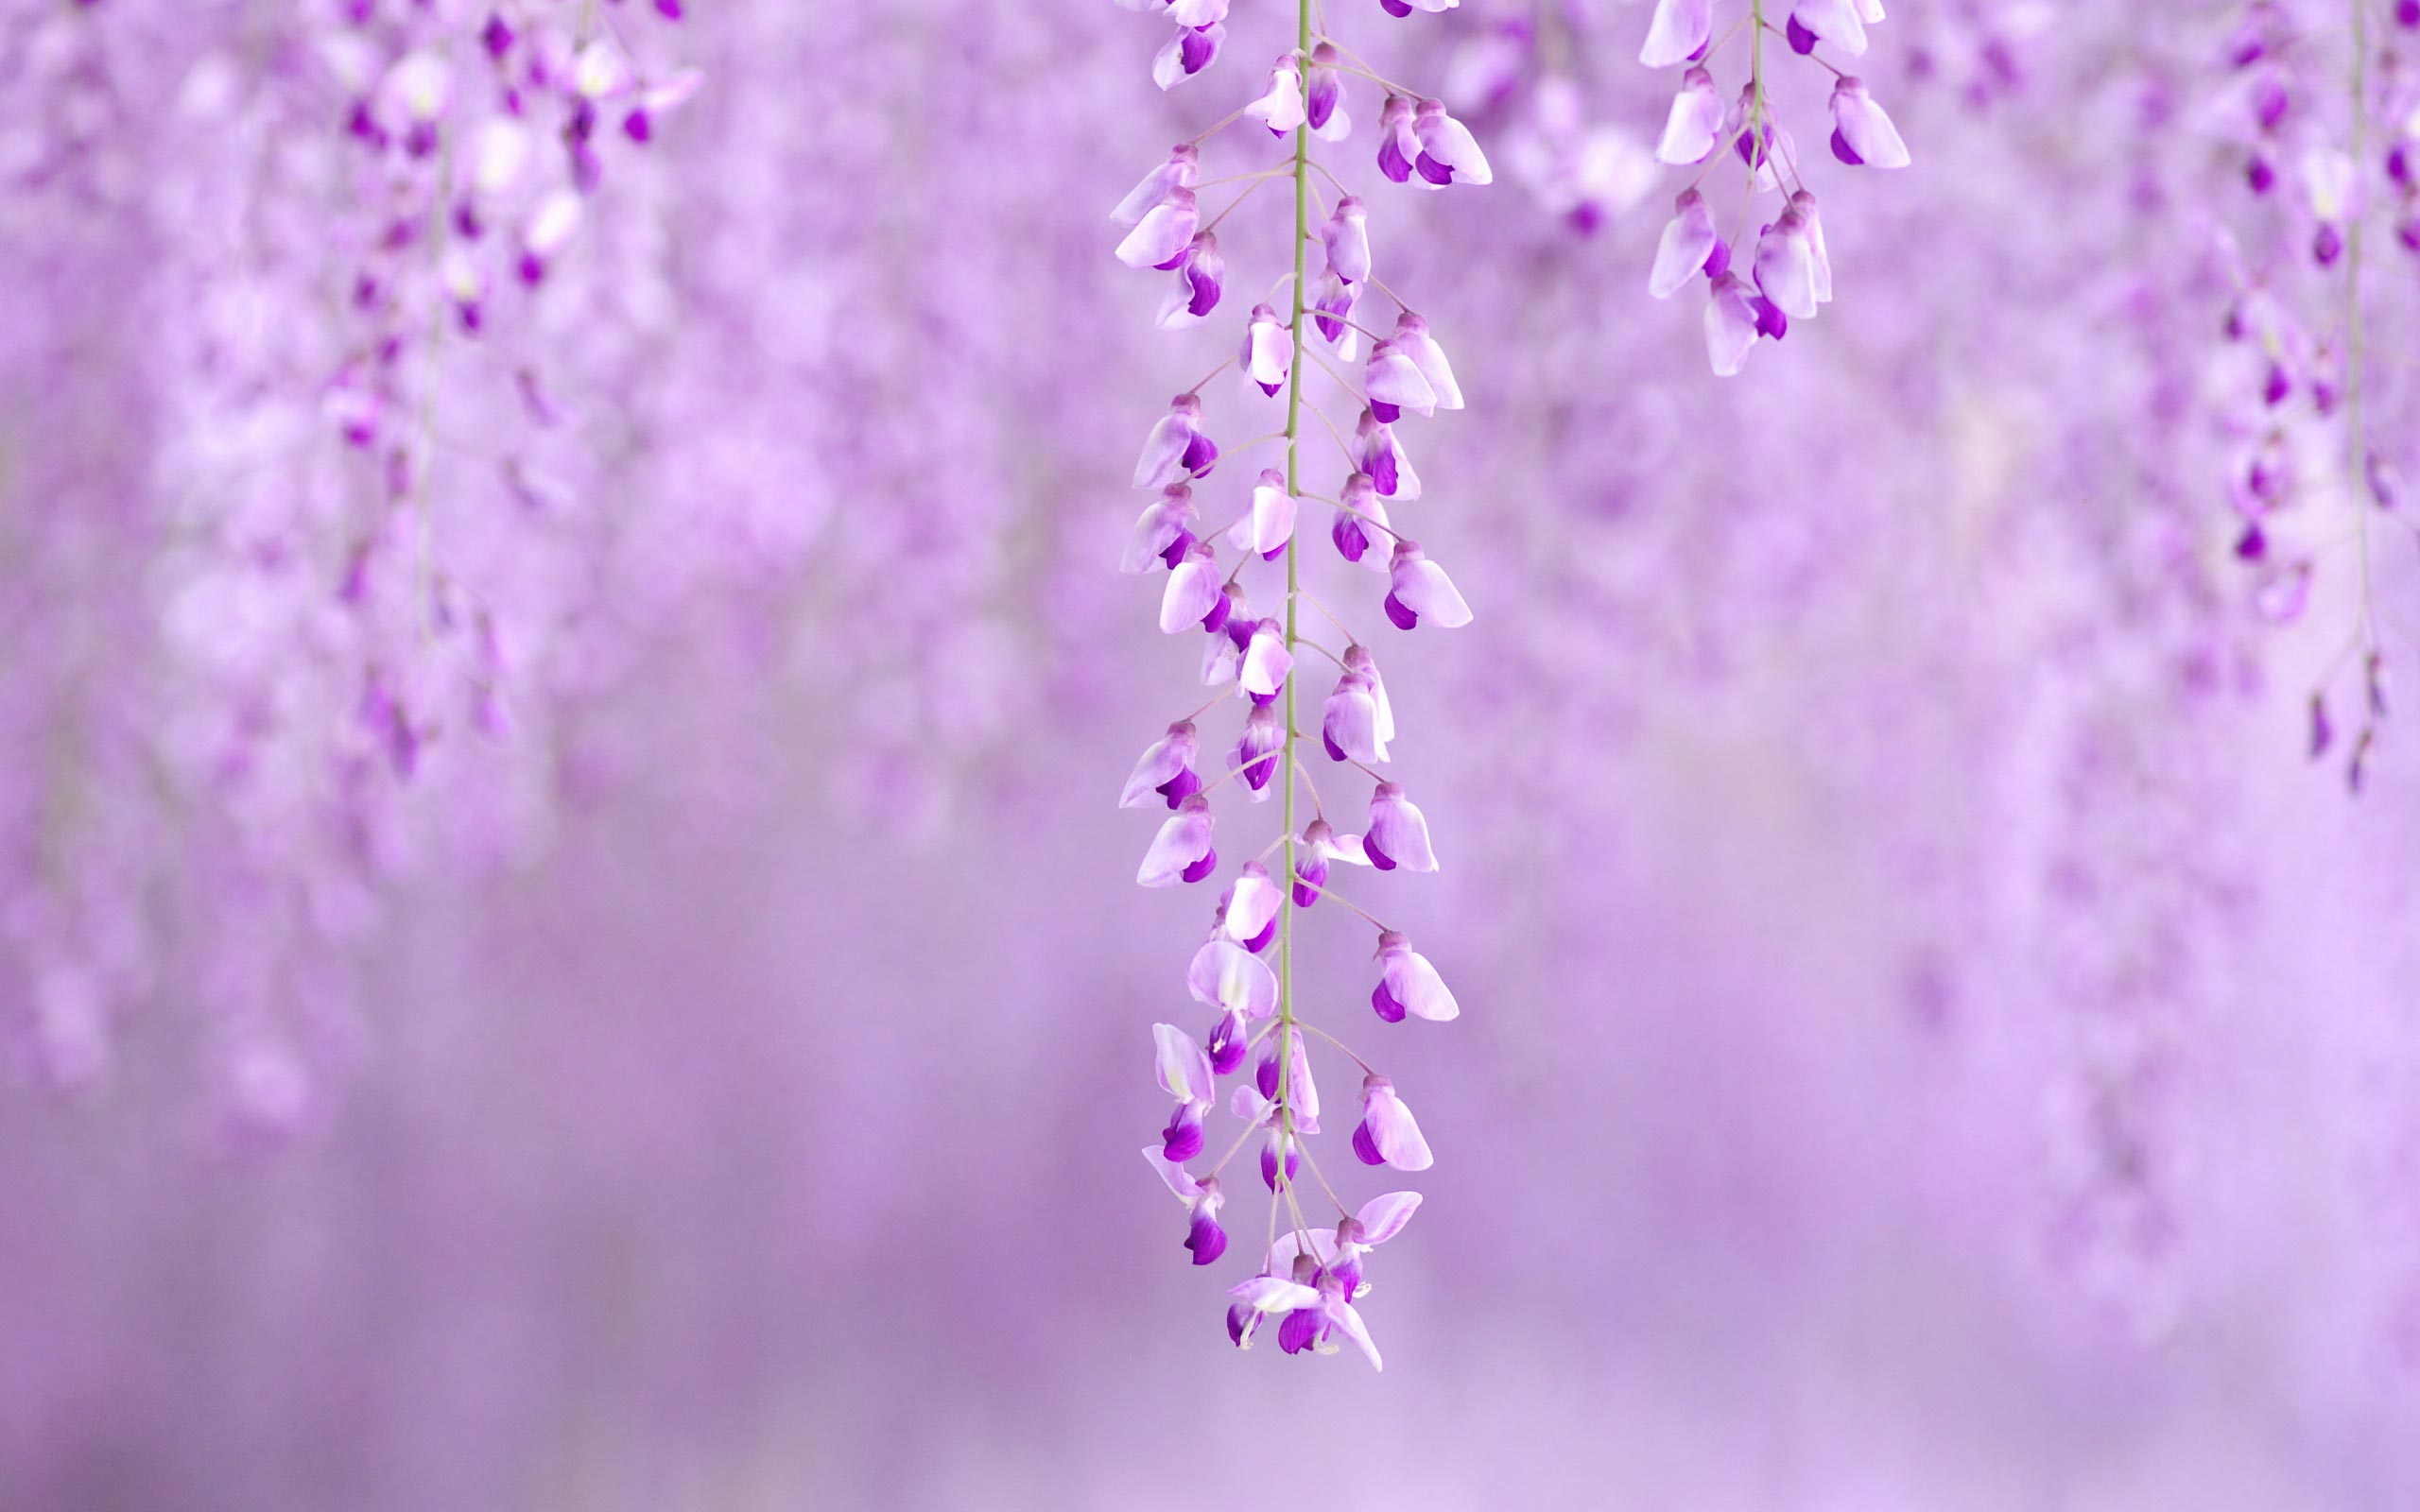 Spring Flowers Background   Wallpaper High Definition High Quality 2560x1600